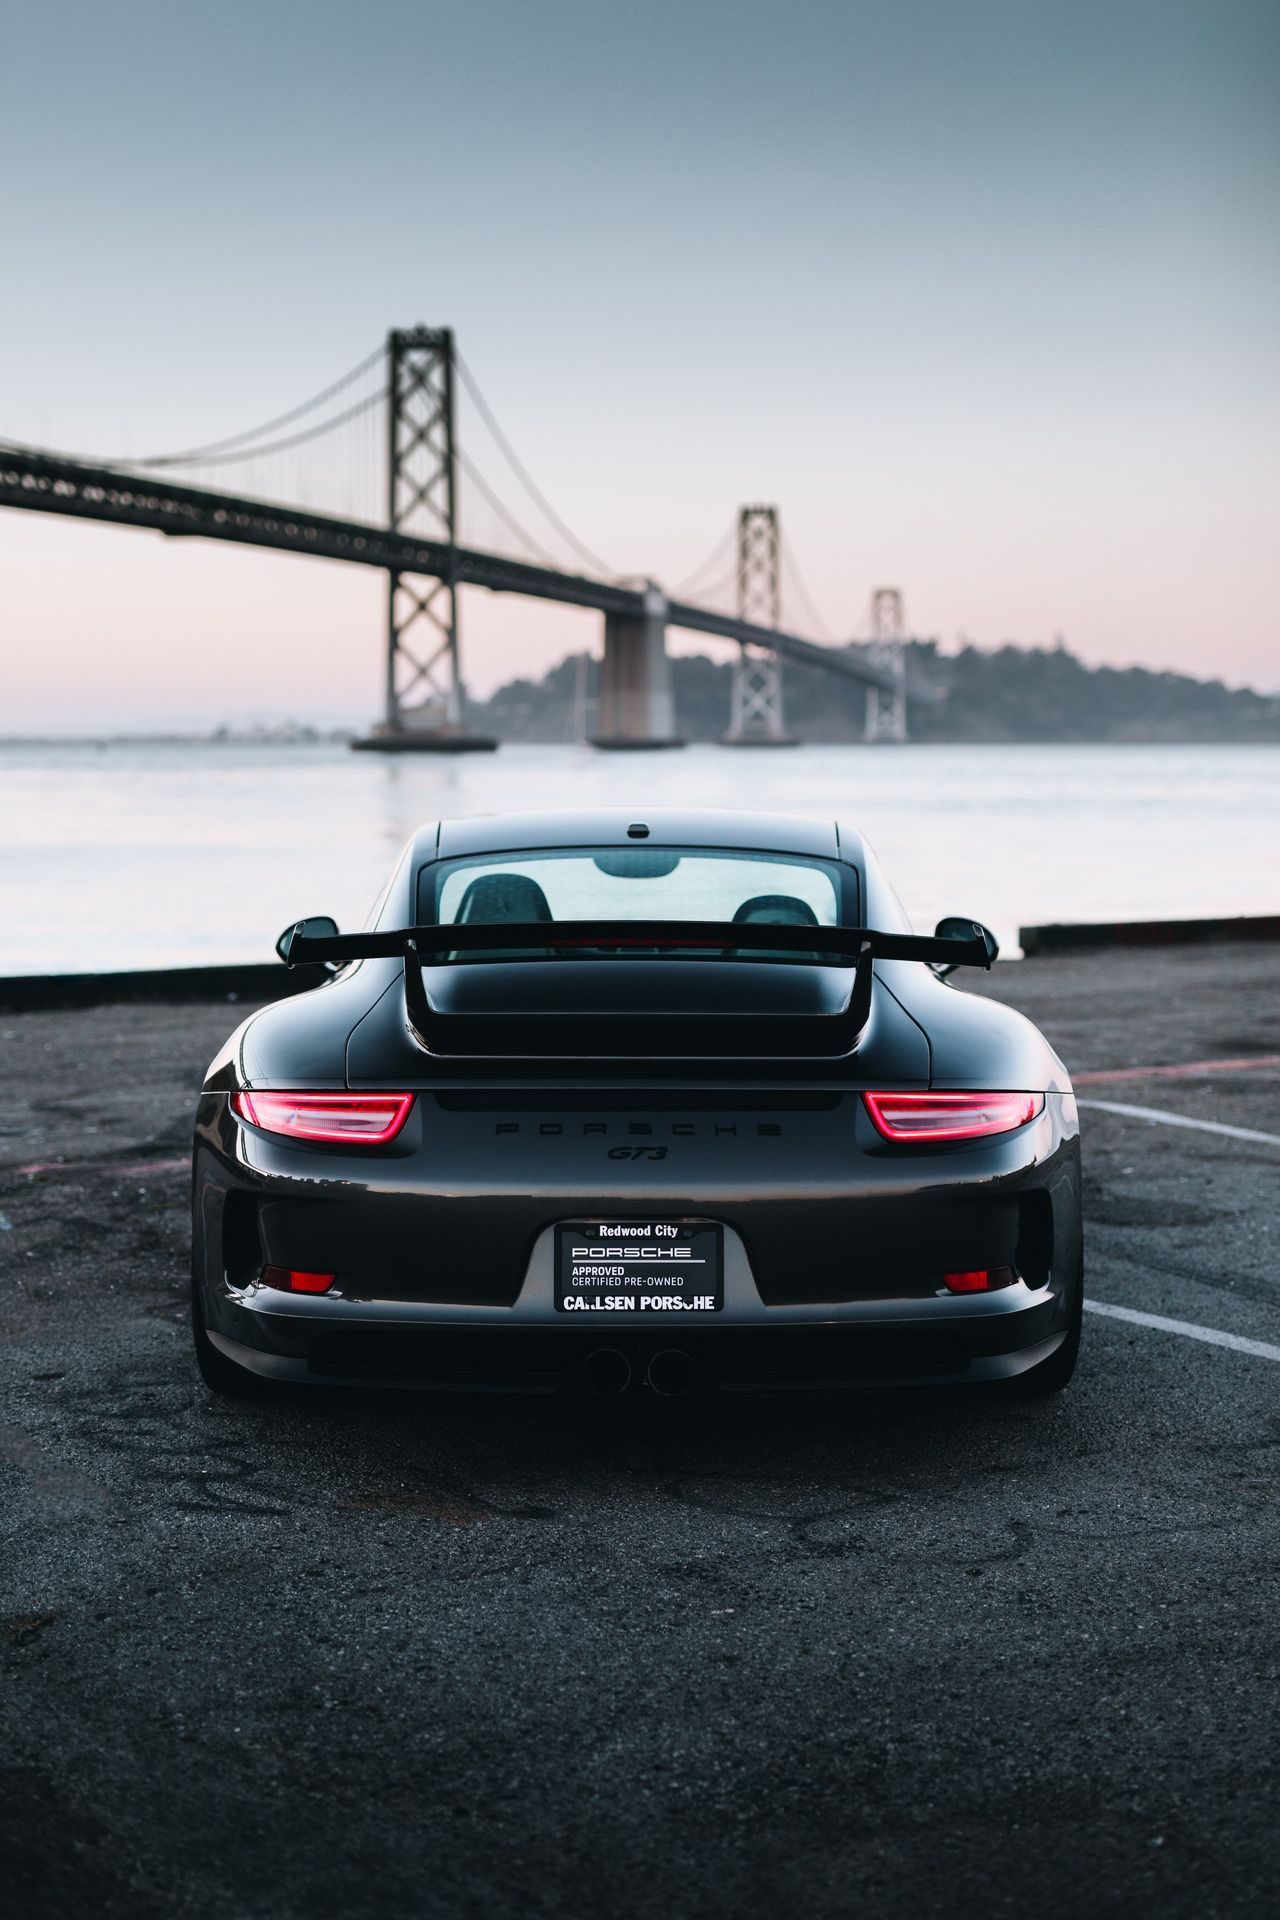 Top 20 Fastest Cars In The World Best Picture Fastest Sports Cars Porsche Gt3 Porsche 911 Porsche